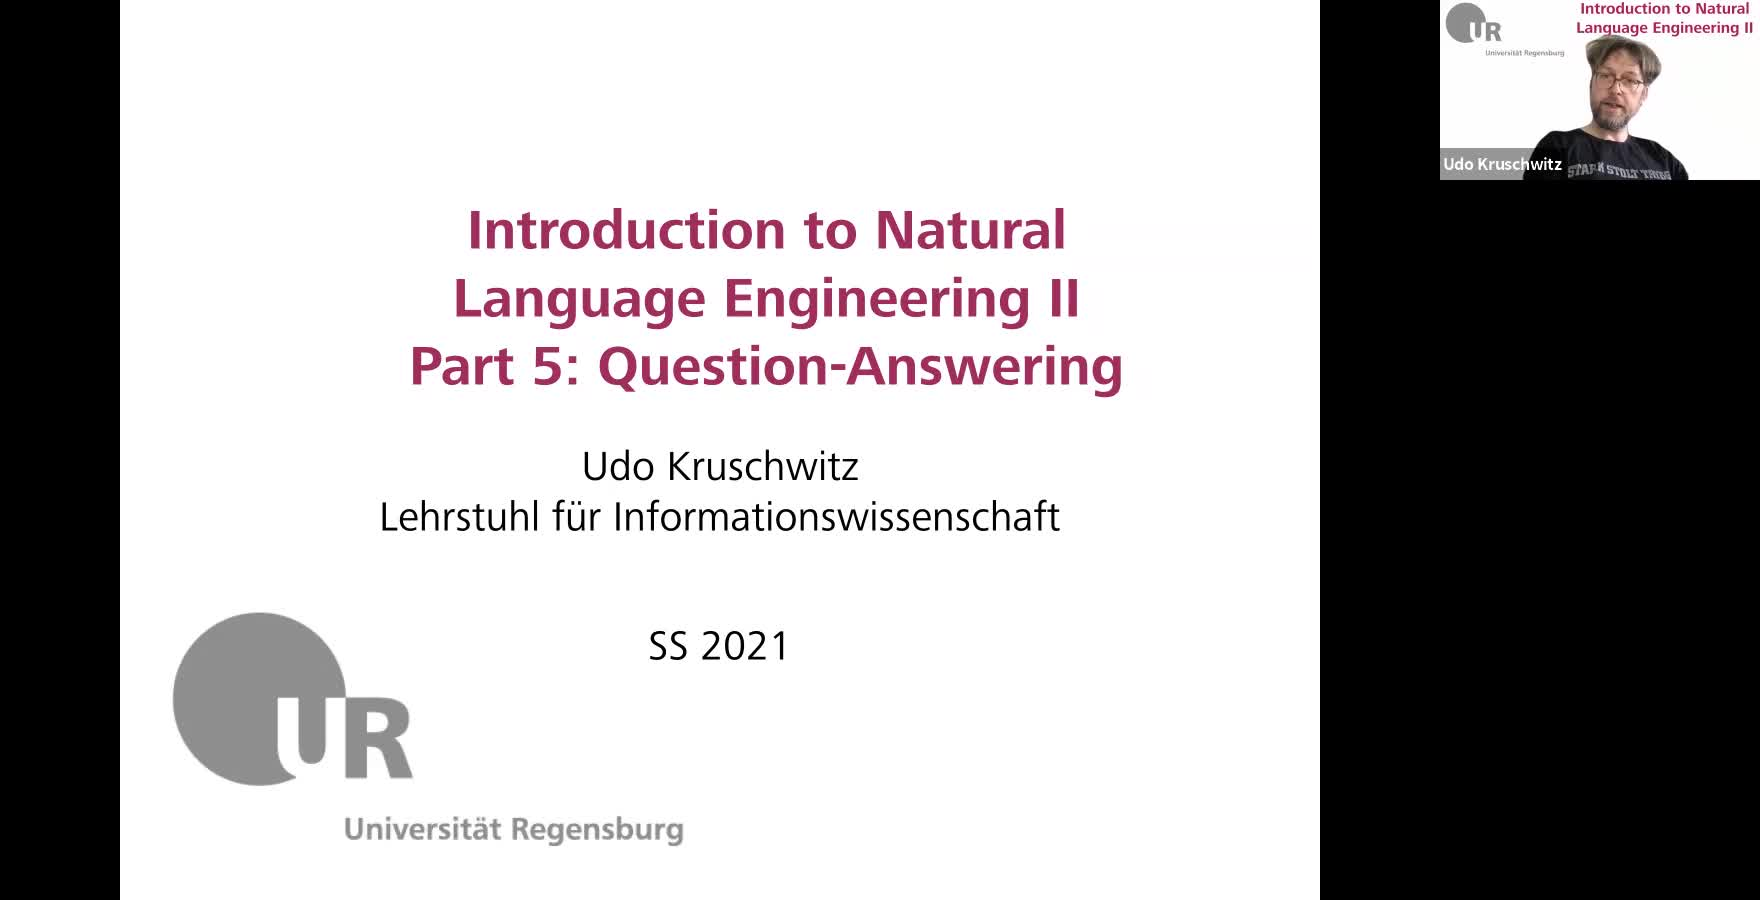 Introduction to Natural Language Engineering 2 / Informationslinguistik 2 - Lecture 6 (Question-answering systems)